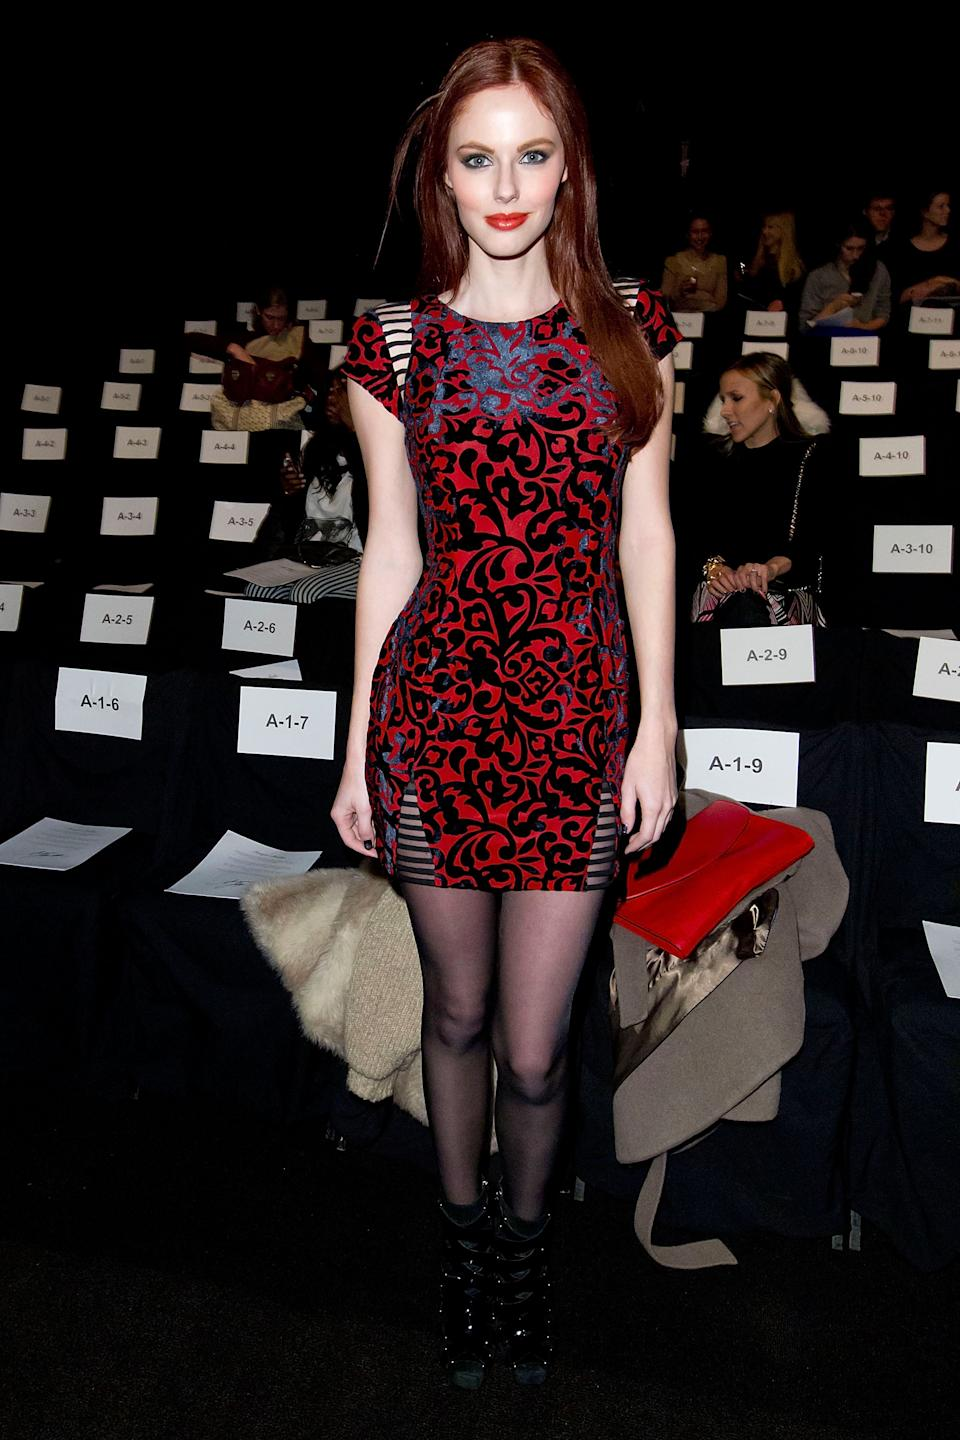 Alyssa Campanella attends the Fall 2013 Monique Lhuillier Runway Show, on Saturday, Feb., 9, 2013 in New York. (Photo by Ben Hider/Invision/AP)